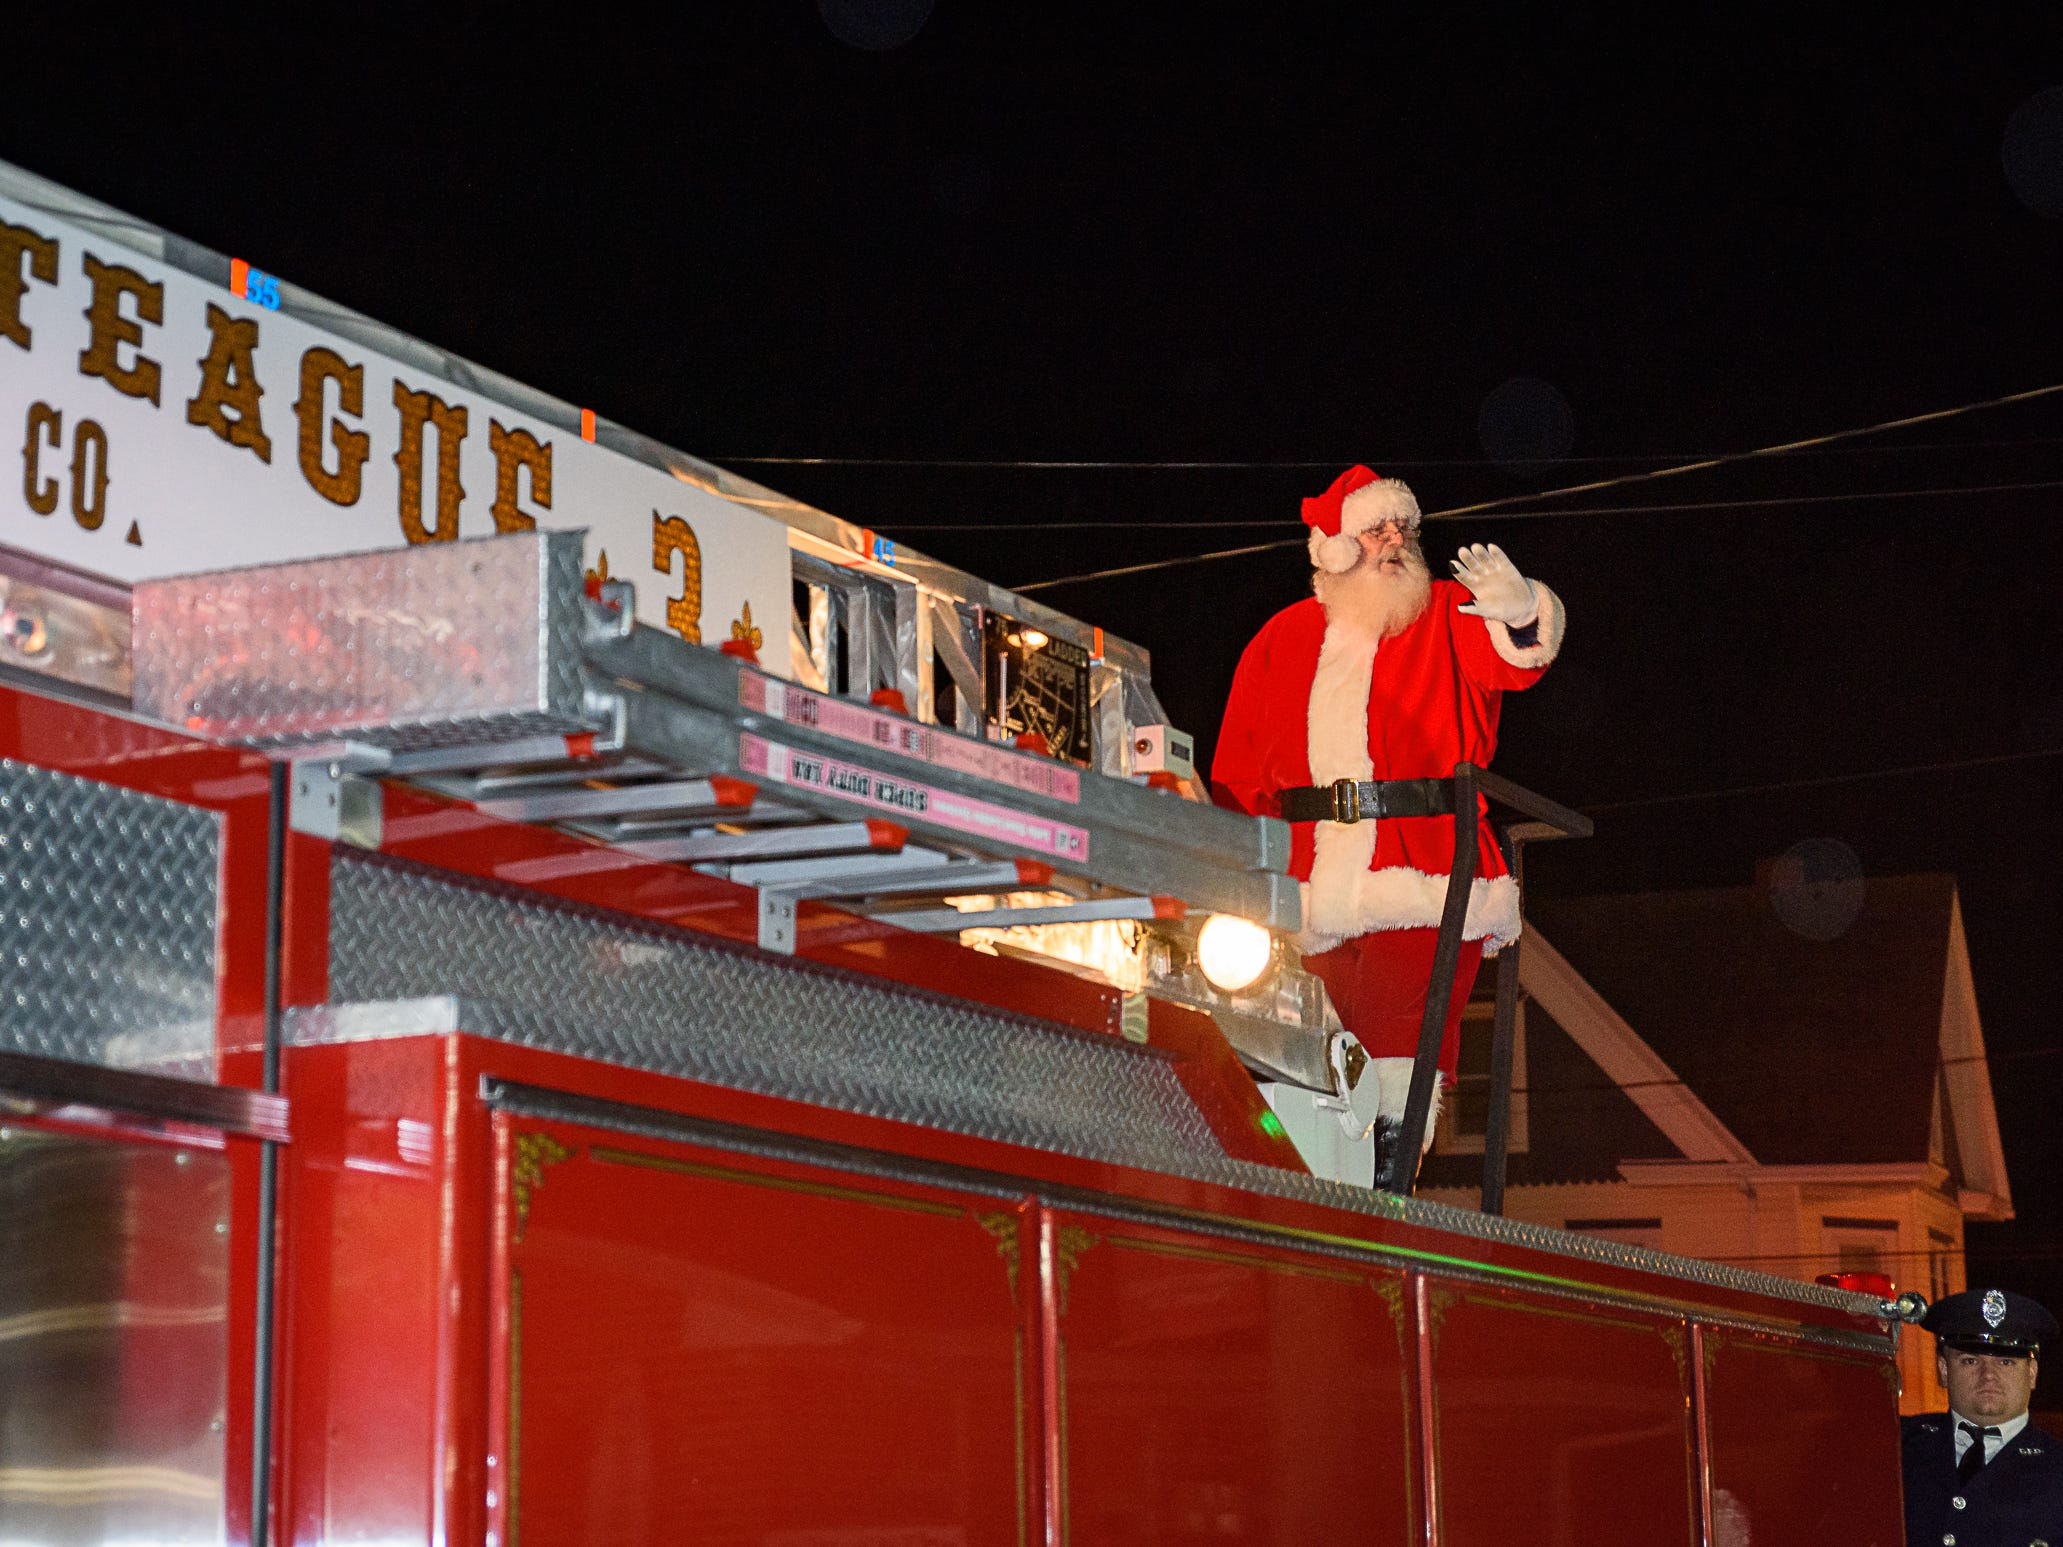 Santa rides atop Chincoteague Volunteer Fire Company's Ladder 3 at the town's Christmas parade on Saturday, Dec. 1.